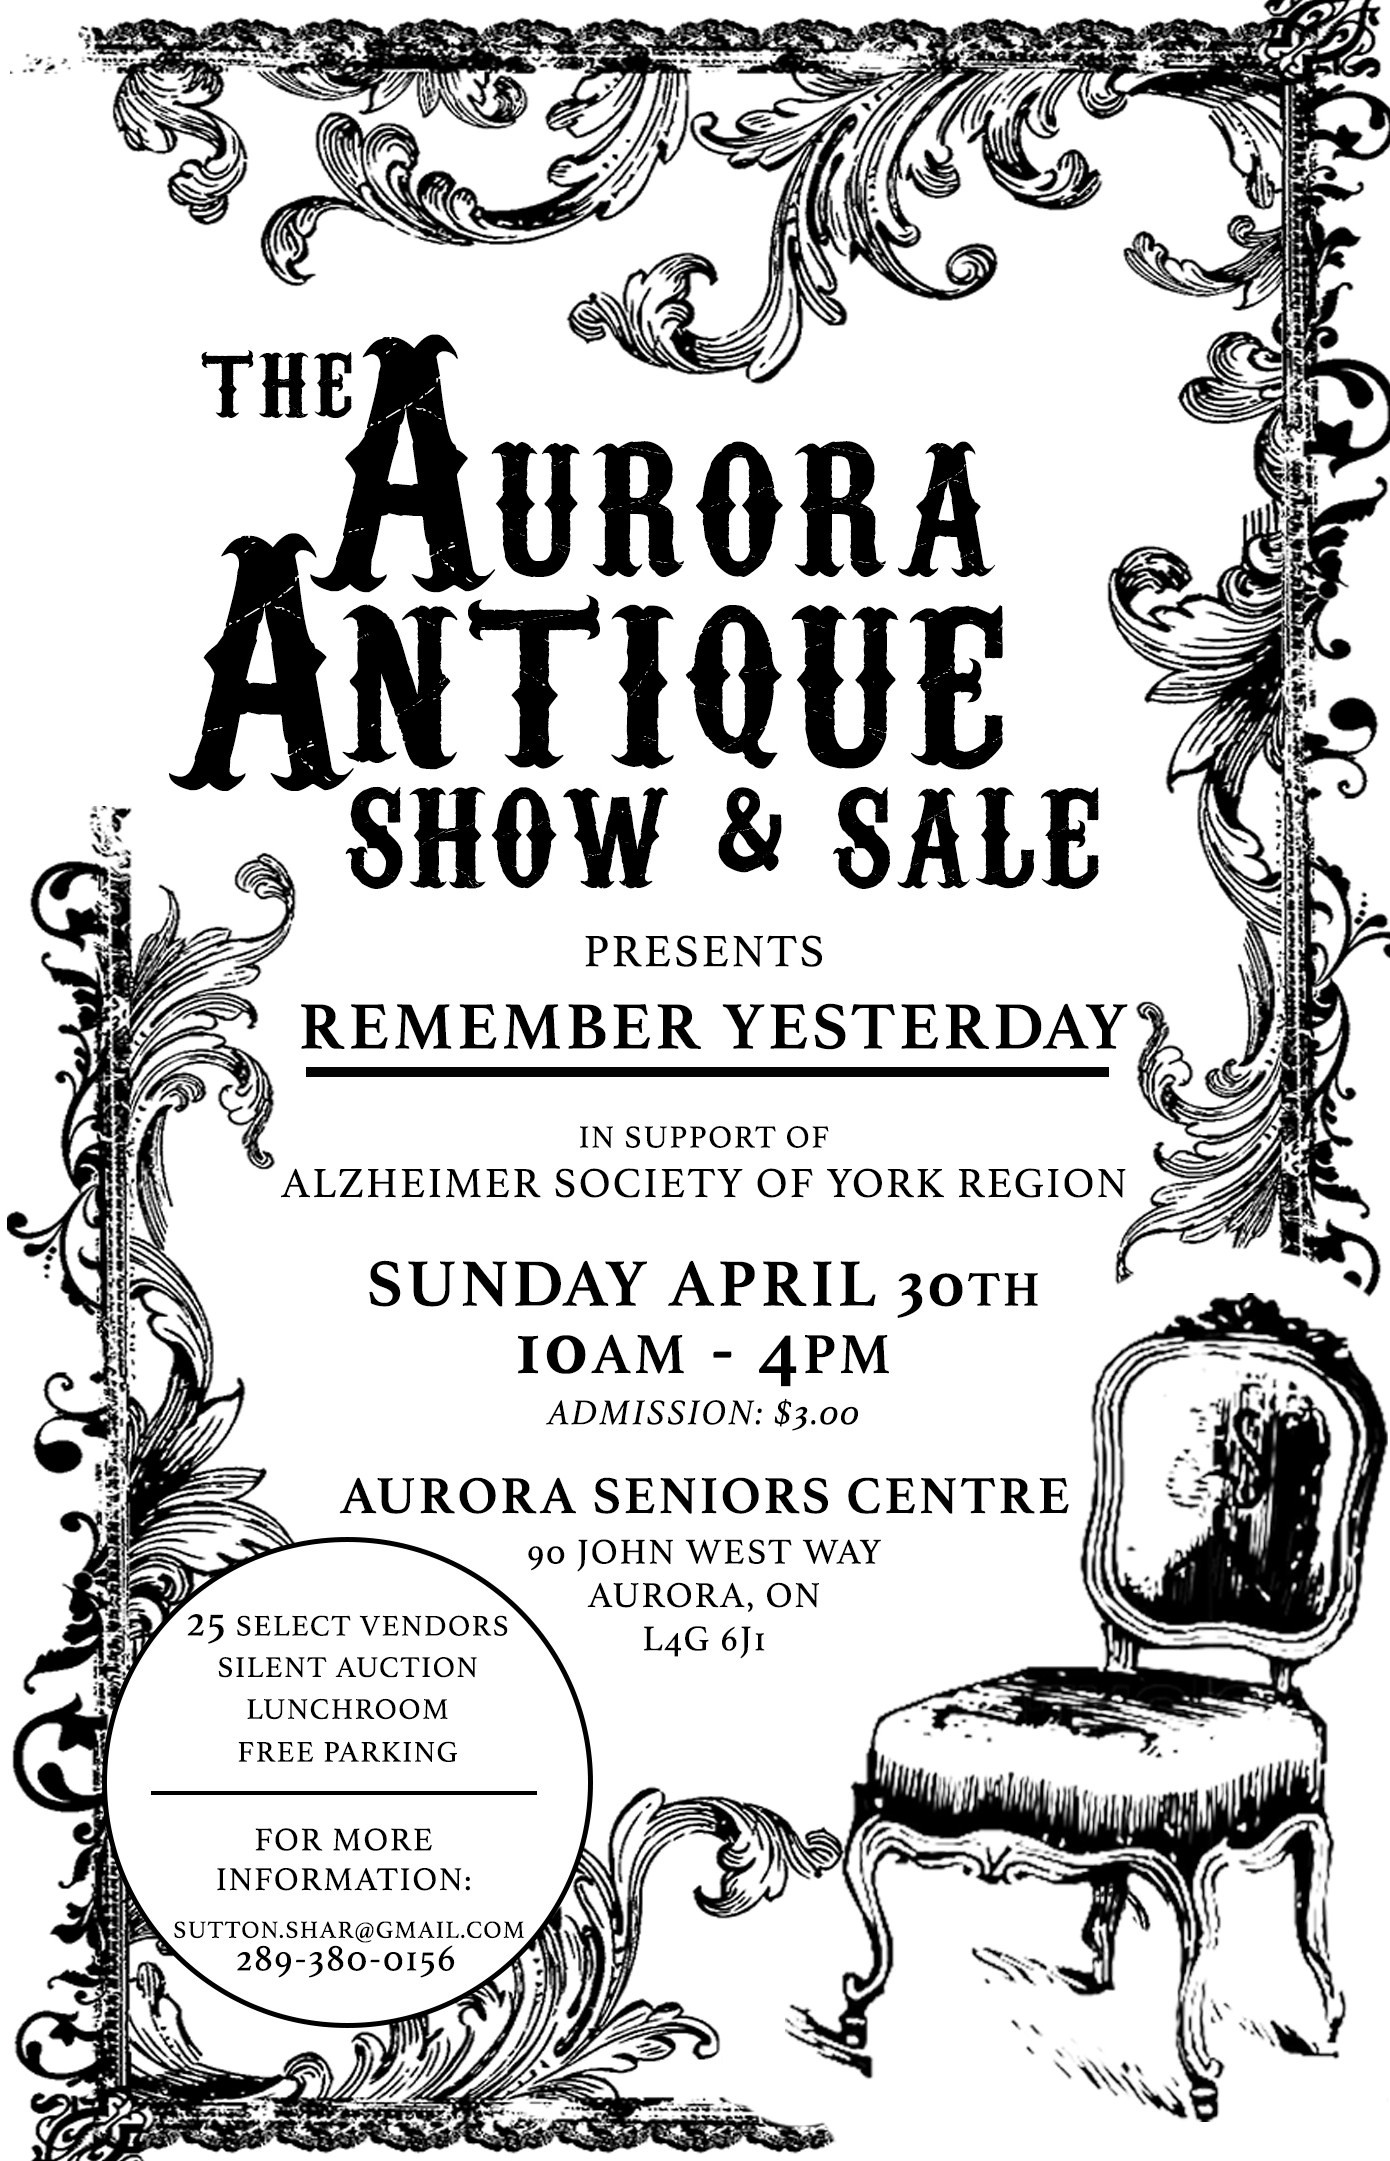 Aurora Antique Show - Supporting Alzheimer Society of York Region